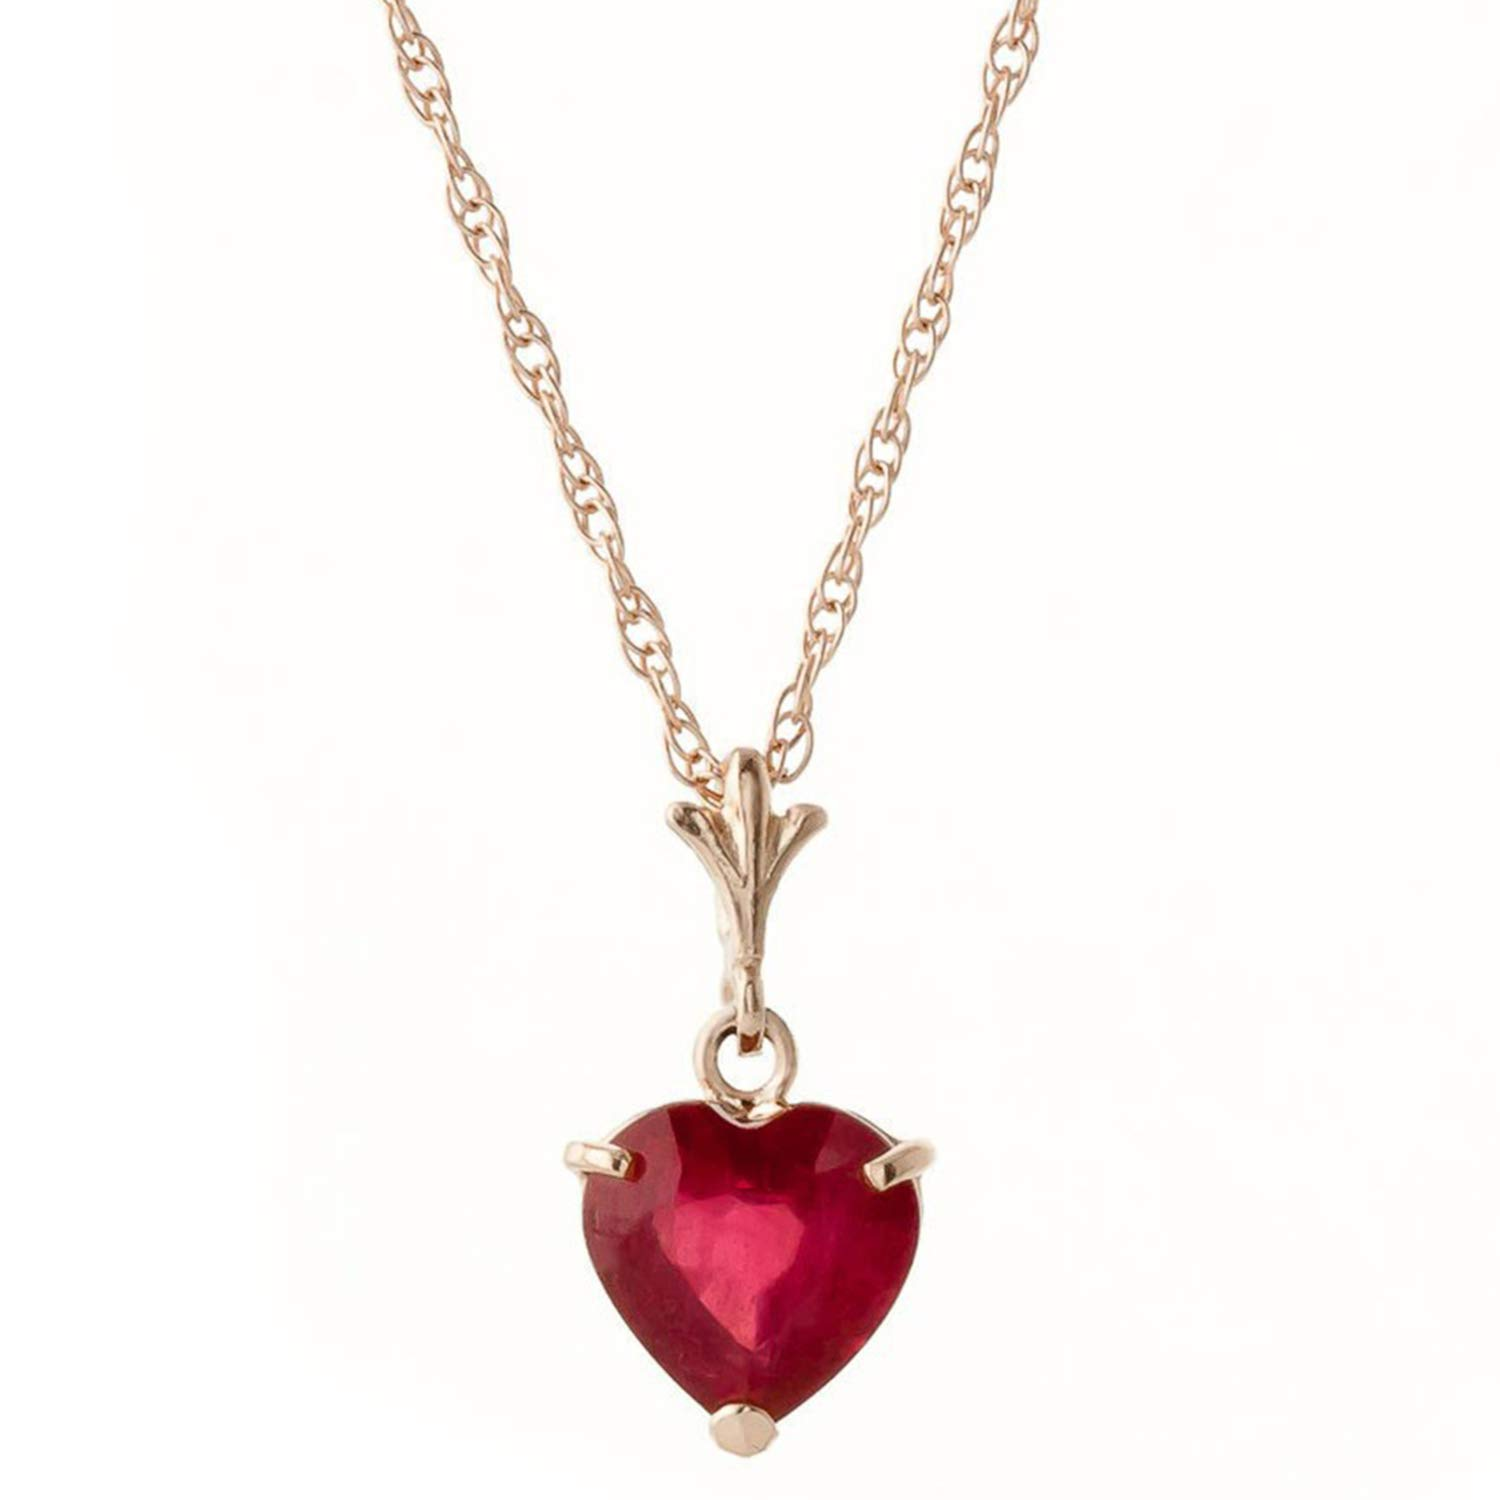 Galaxy Gold 1.45 Carat High Polished 14k 14'' Solid Rose Gold Pendant Necklace with Heart Shape Natural Ruby - Heat Treated